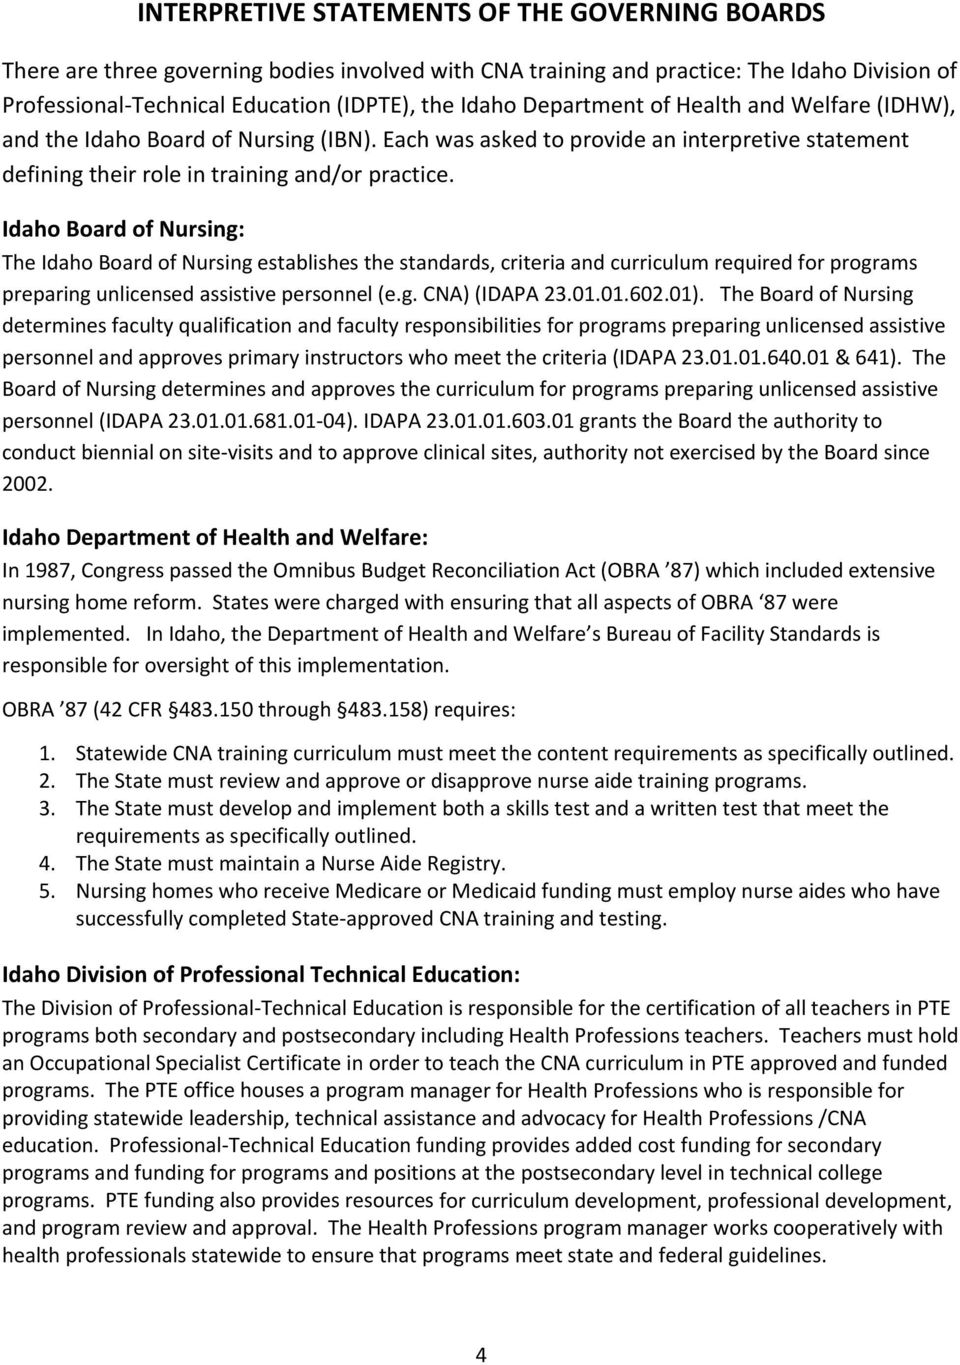 Idaho Board of Nursing: The Idaho Board of Nursing establishes the standards, criteria and curriculum required for programs preparing unlicensed assistive personnel (e.g. CNA) (IDAPA 23.01.01.602.01).